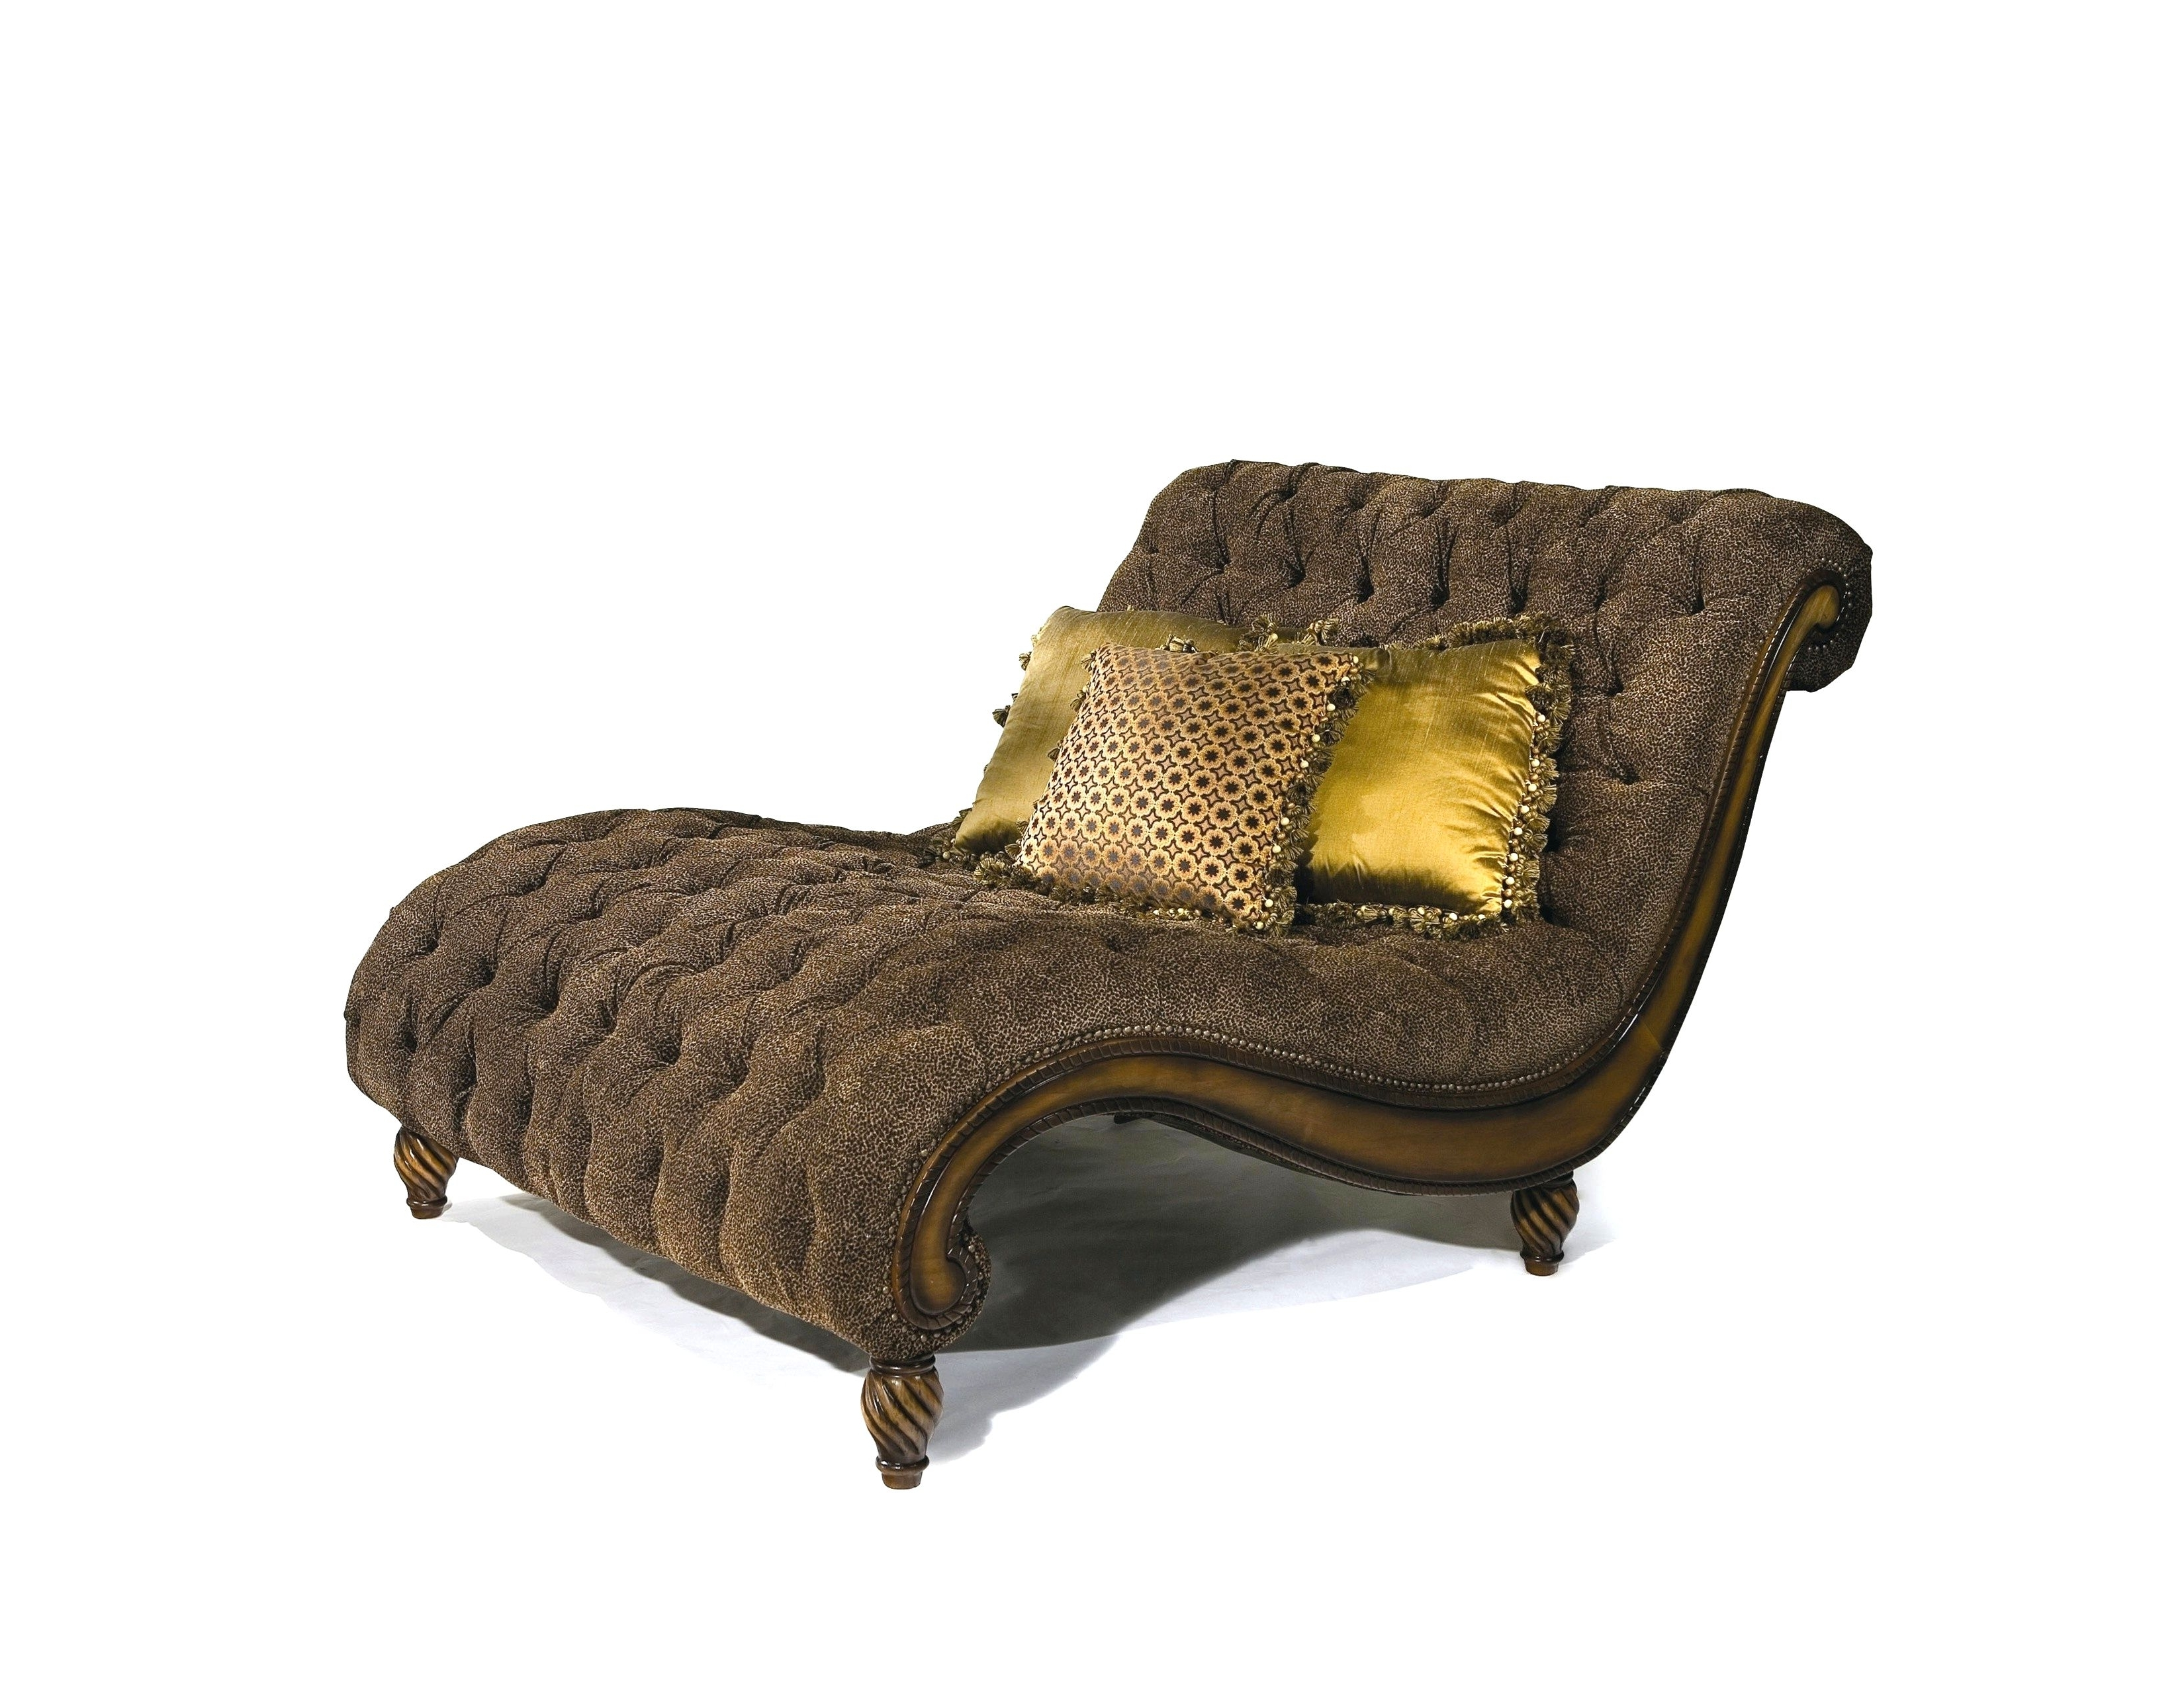 Animal Print Chaise Lounge Mariaalcocer Beautiful Of Leopard Pertaining To Best And Newest Leopard Chaises (View 8 of 15)